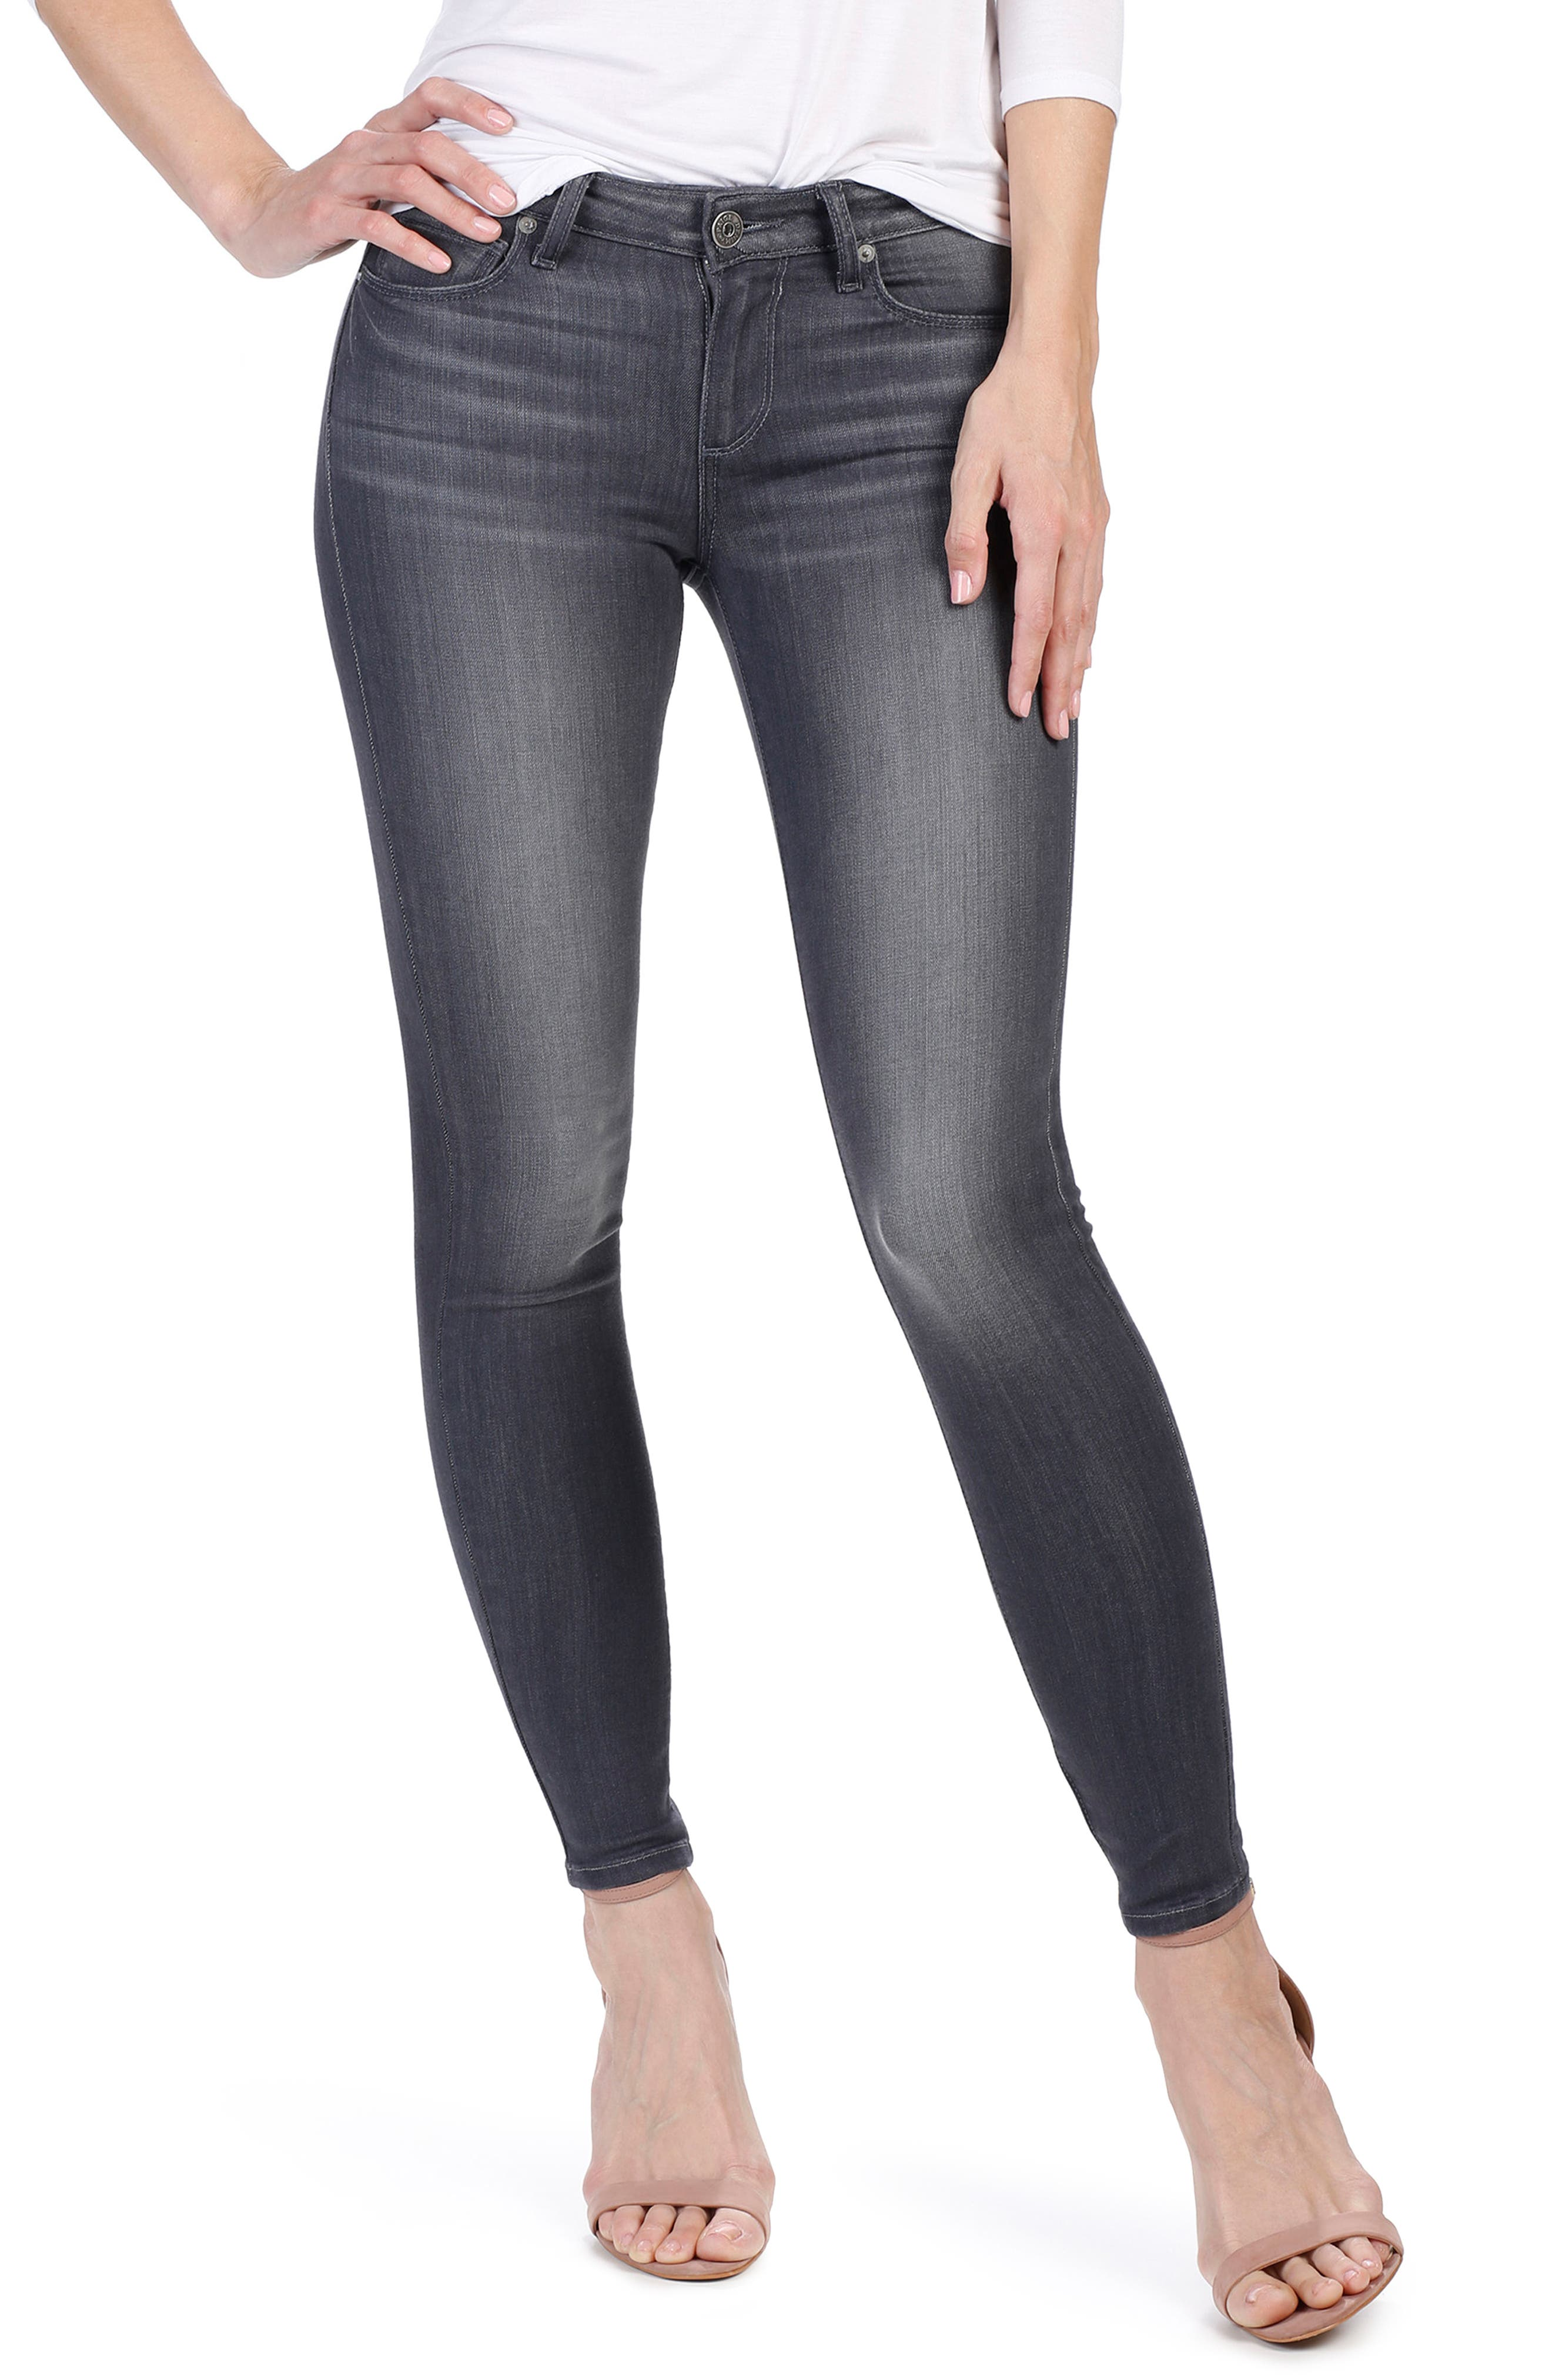 Transcend - Verdugo Ankle Skinny Jeans,                         Main,                         color, Summit Grey